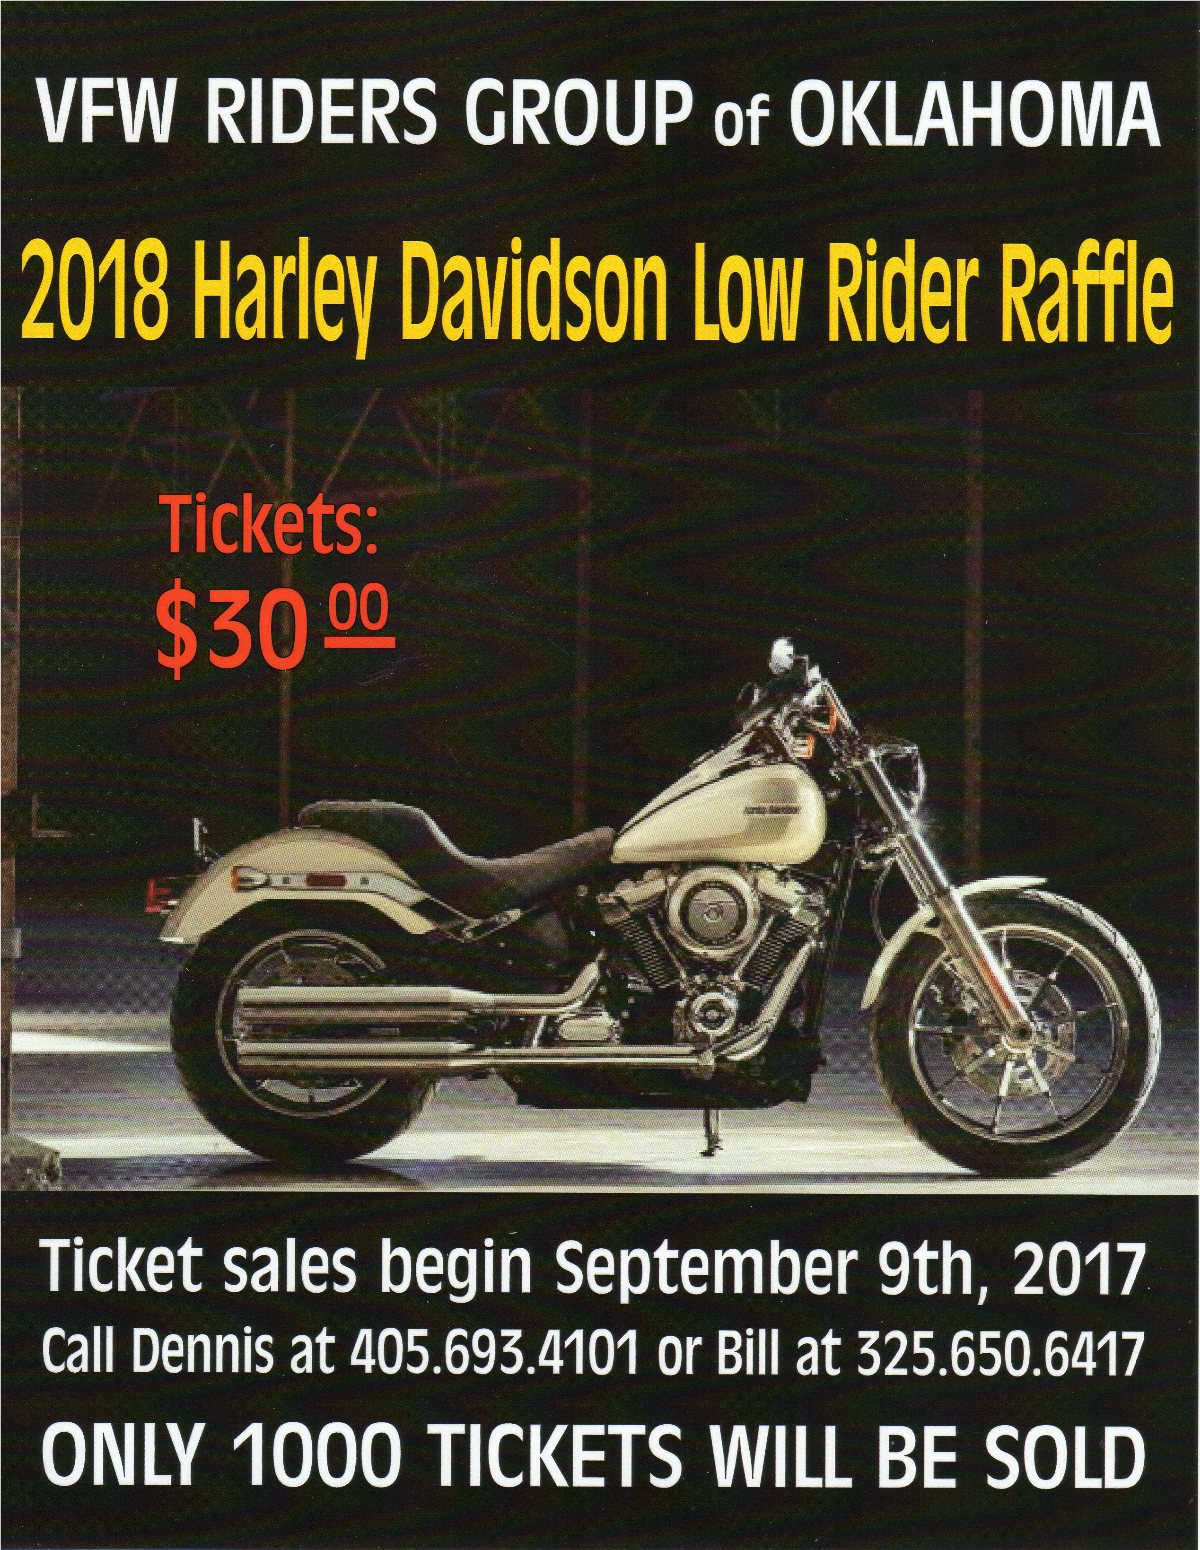 u.5.Riders Group Raffle Resize.jpg